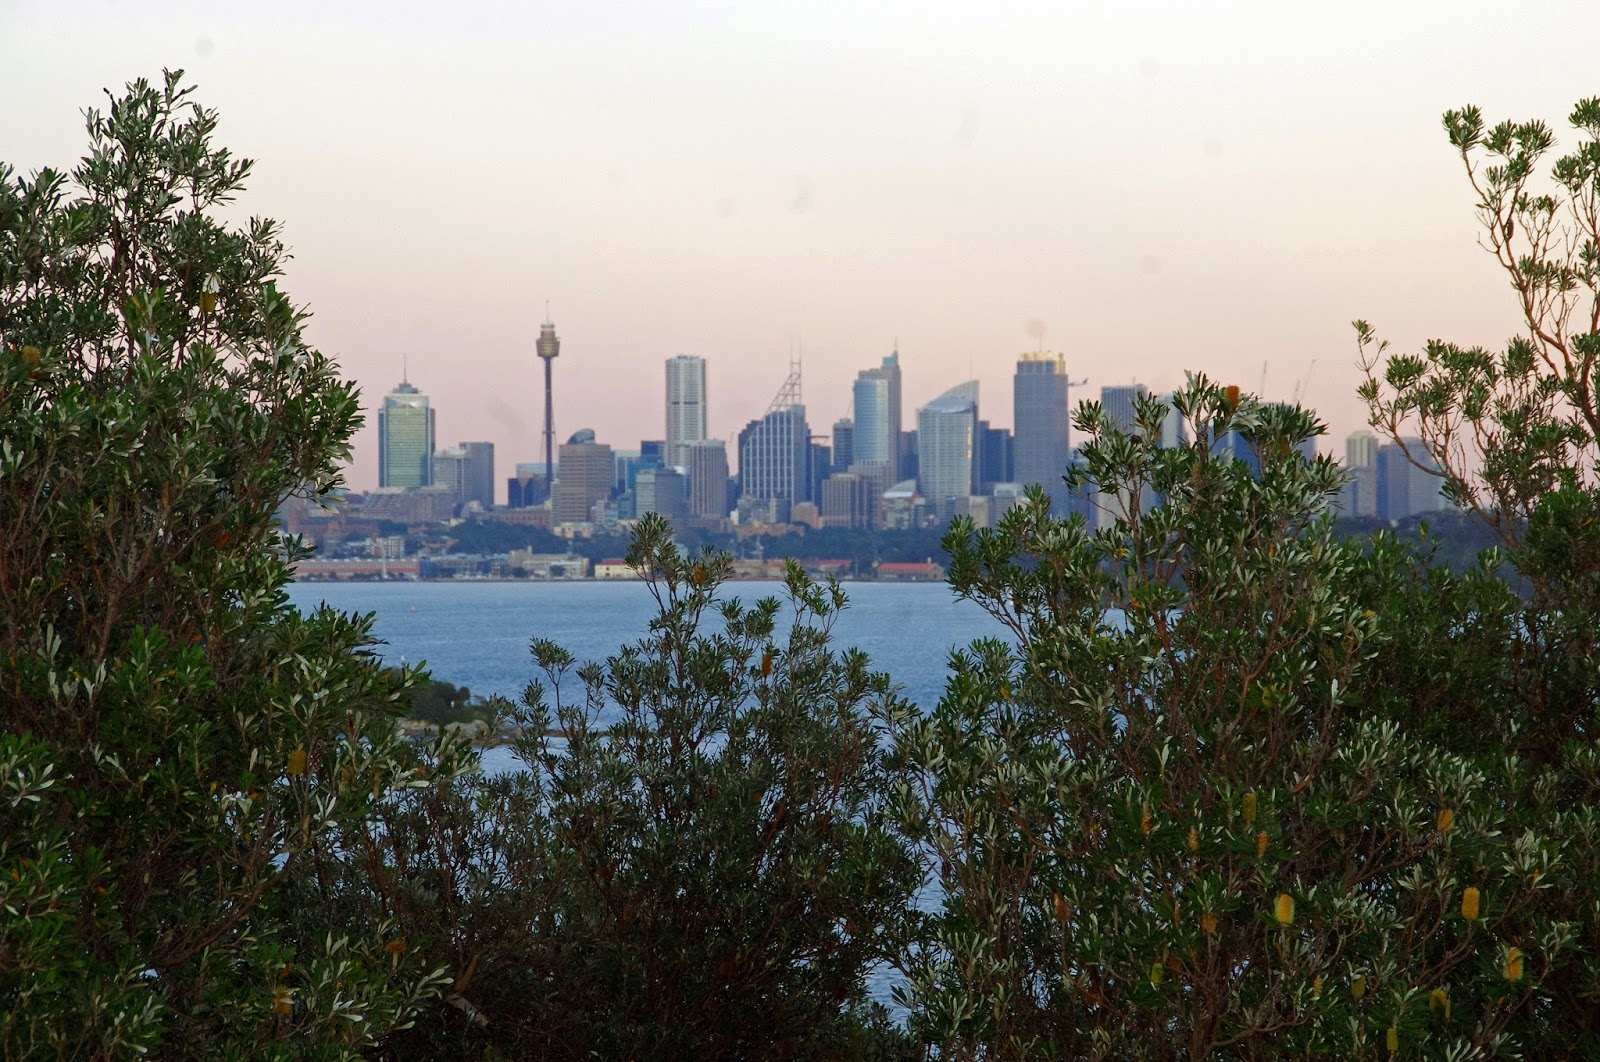 Sydney Skyline from the Gap